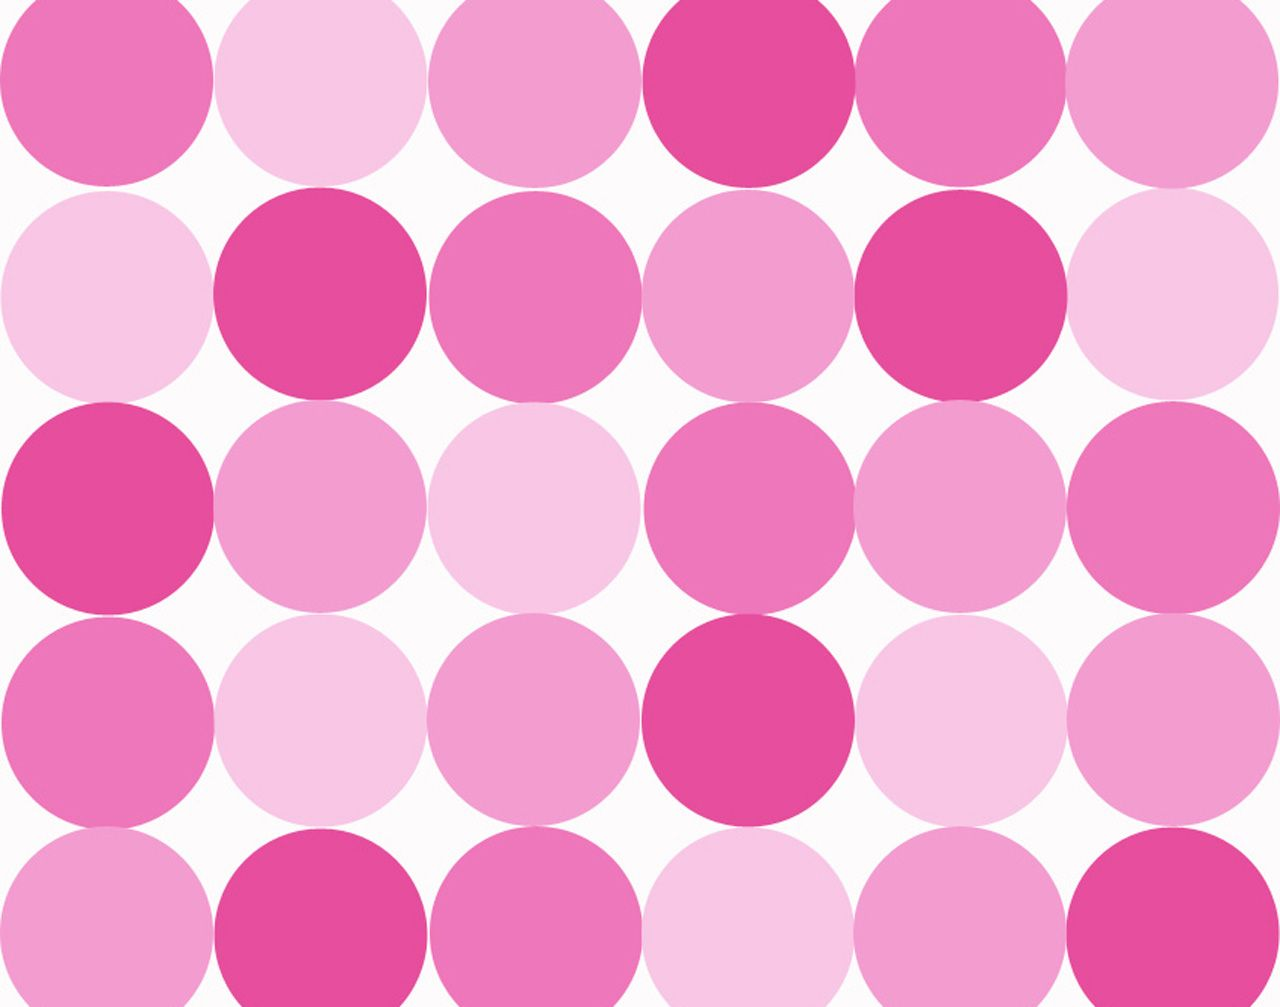 Pics photos pink polka dot s wallpaper - Polka Dot Wallpapers Na744 Hd Wallpapers For Desktop And Mobile